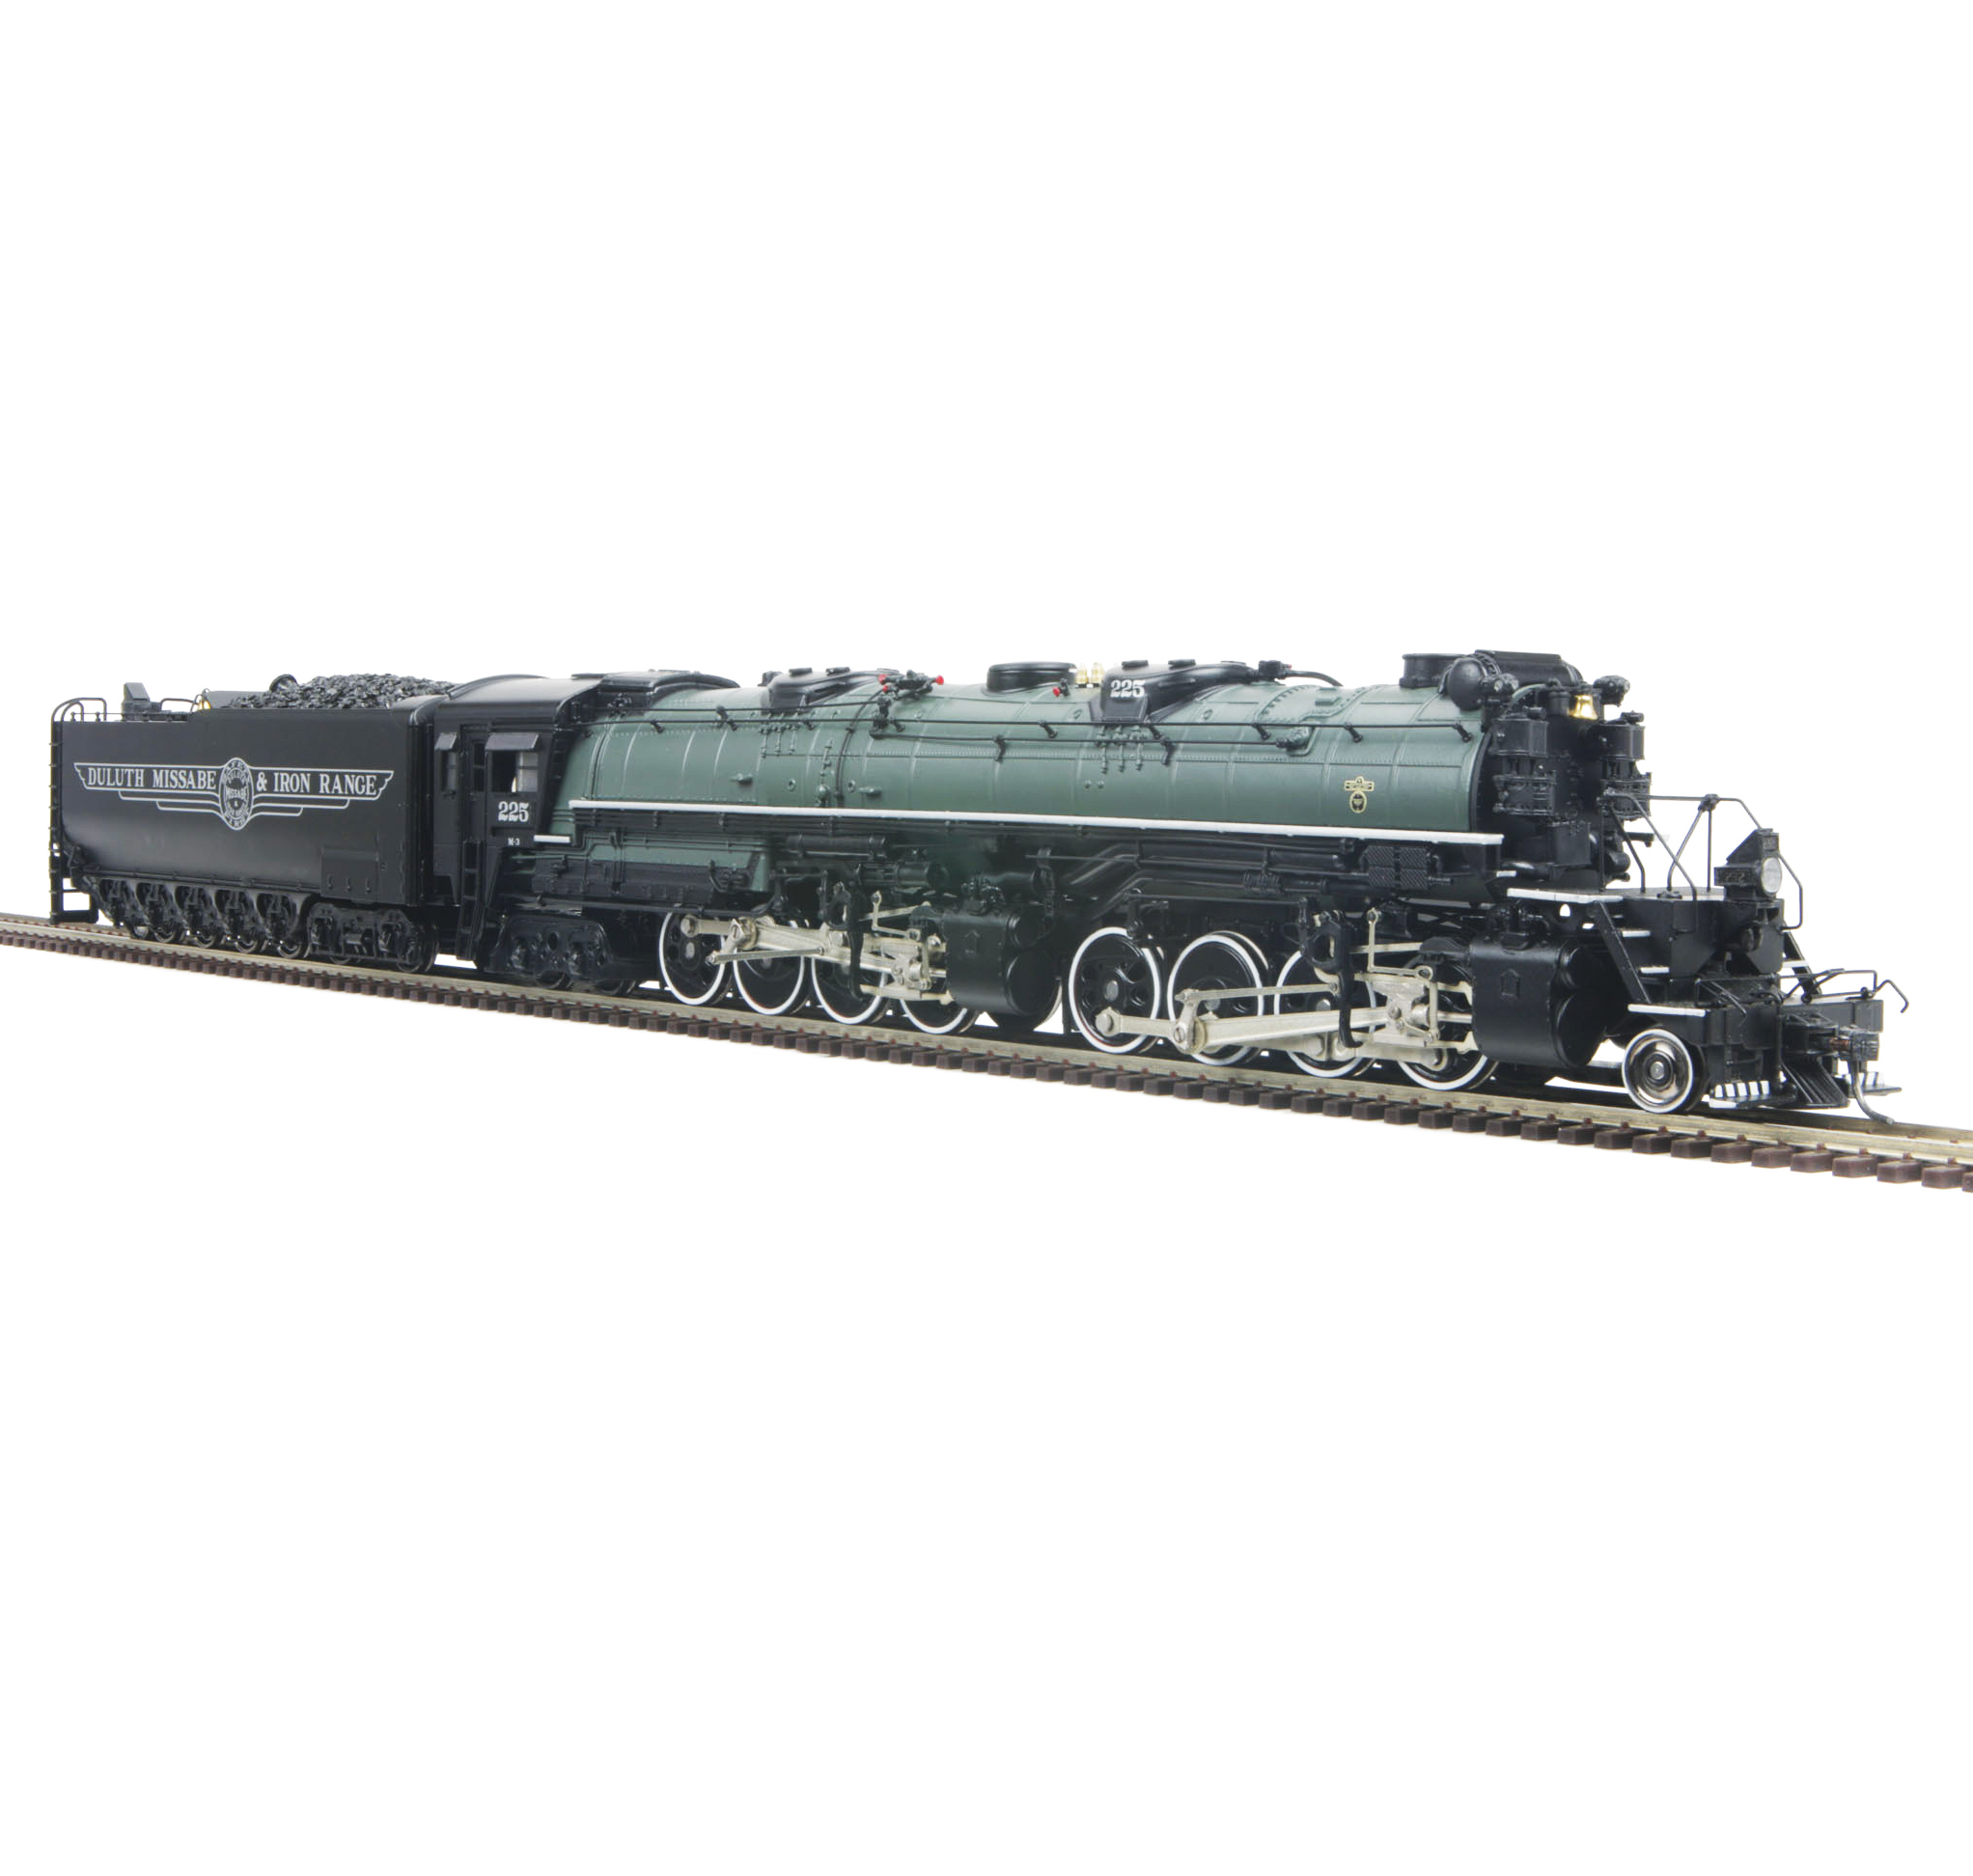 Scale steam locomotives for sale n scale steam locomotives - Mth Ho Scale